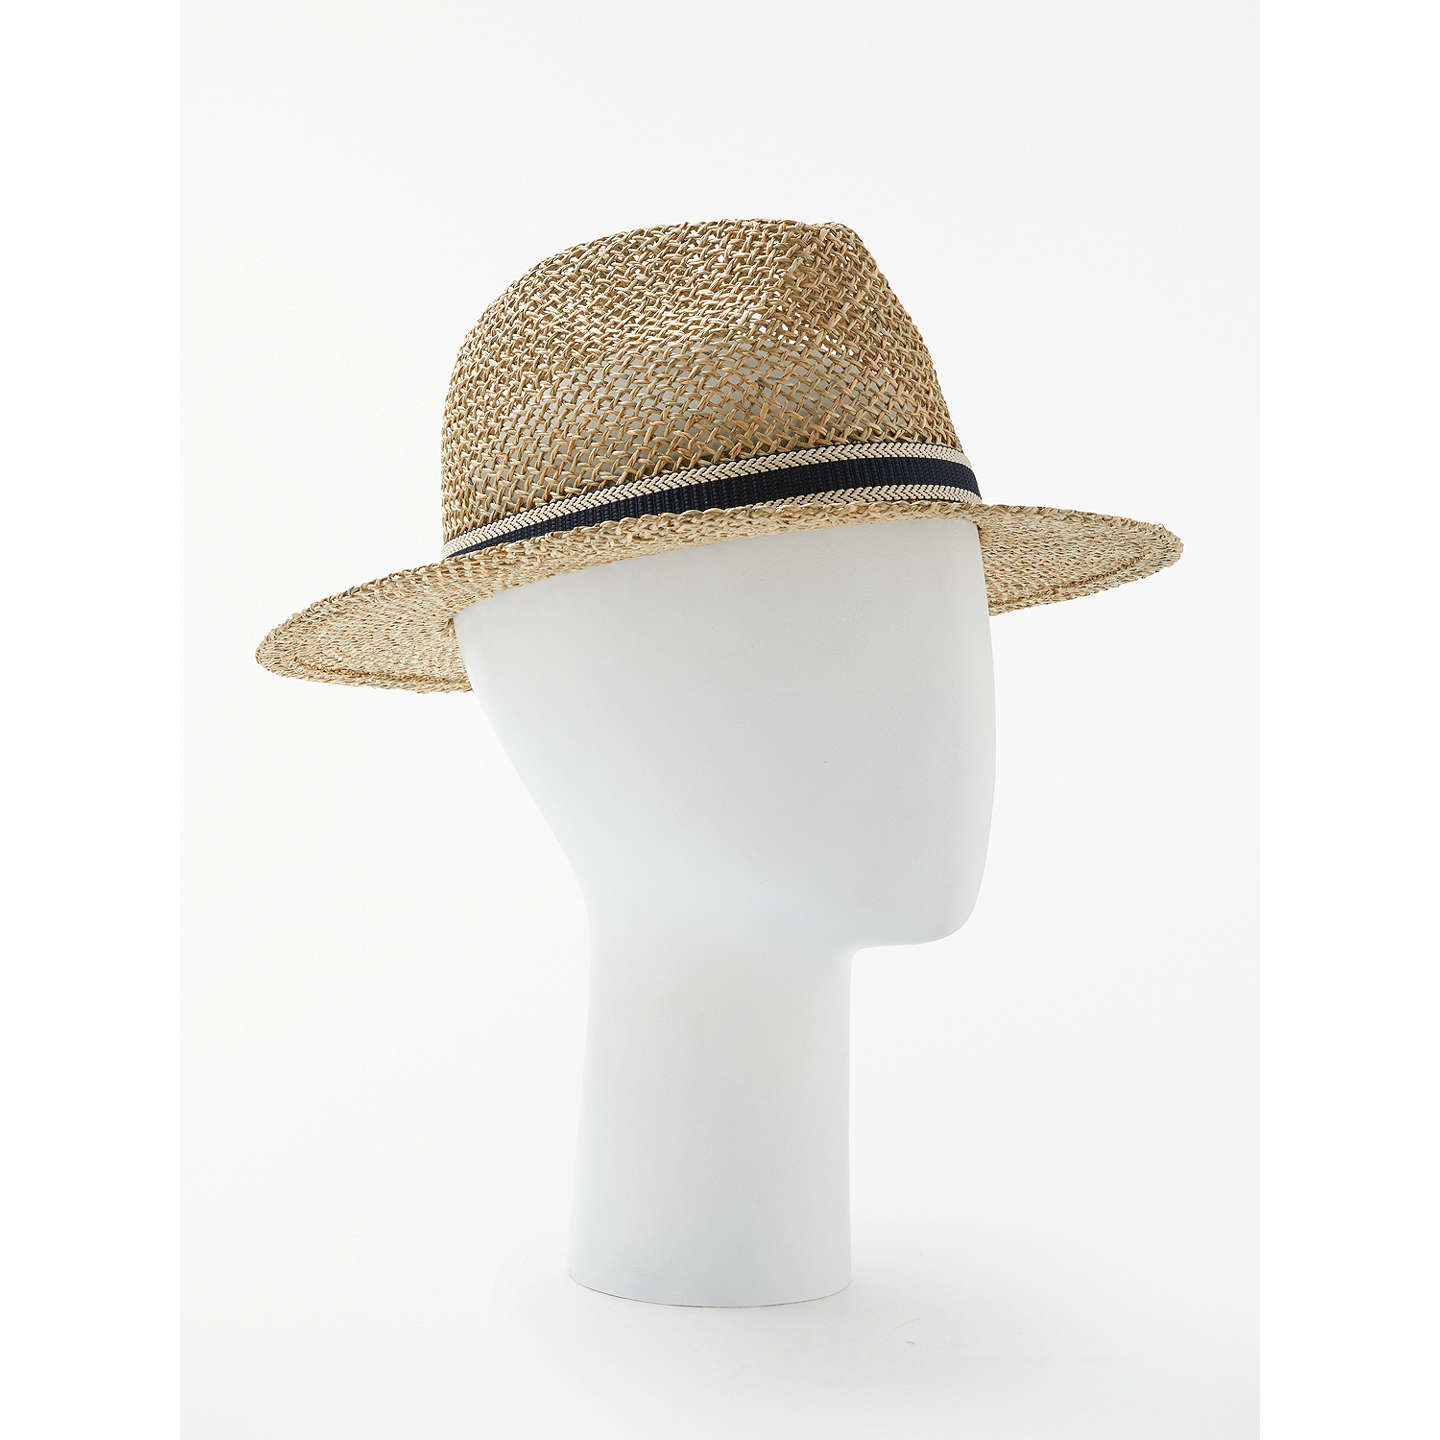 BuyJohn Lewis Seagrass Fedora Hat, Beige, S/M Online at johnlewis.com